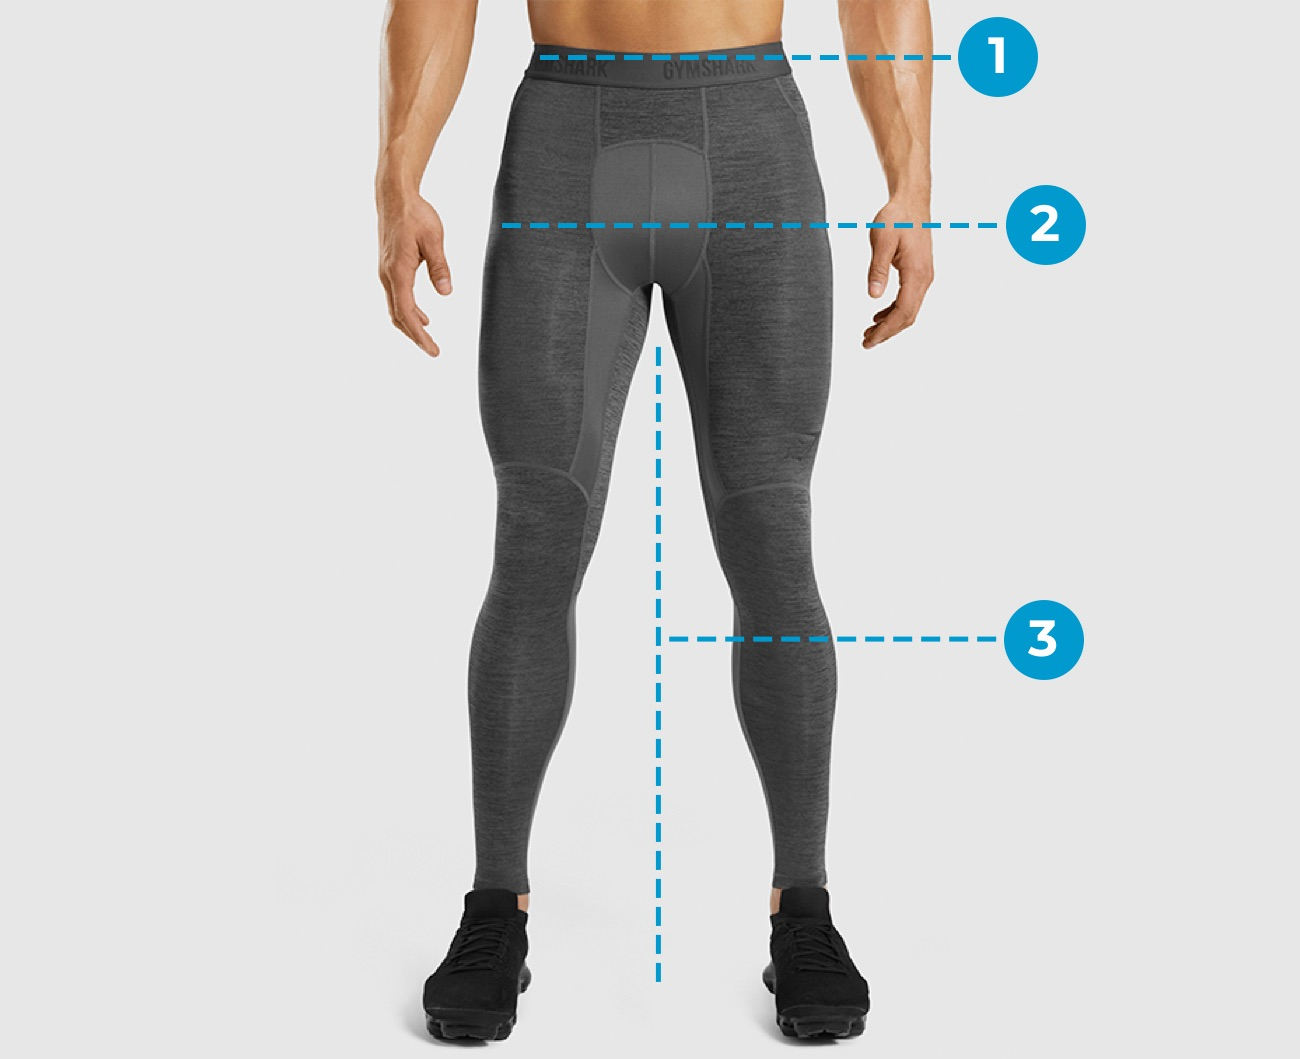 Mens Size Guide Bottoms Markings